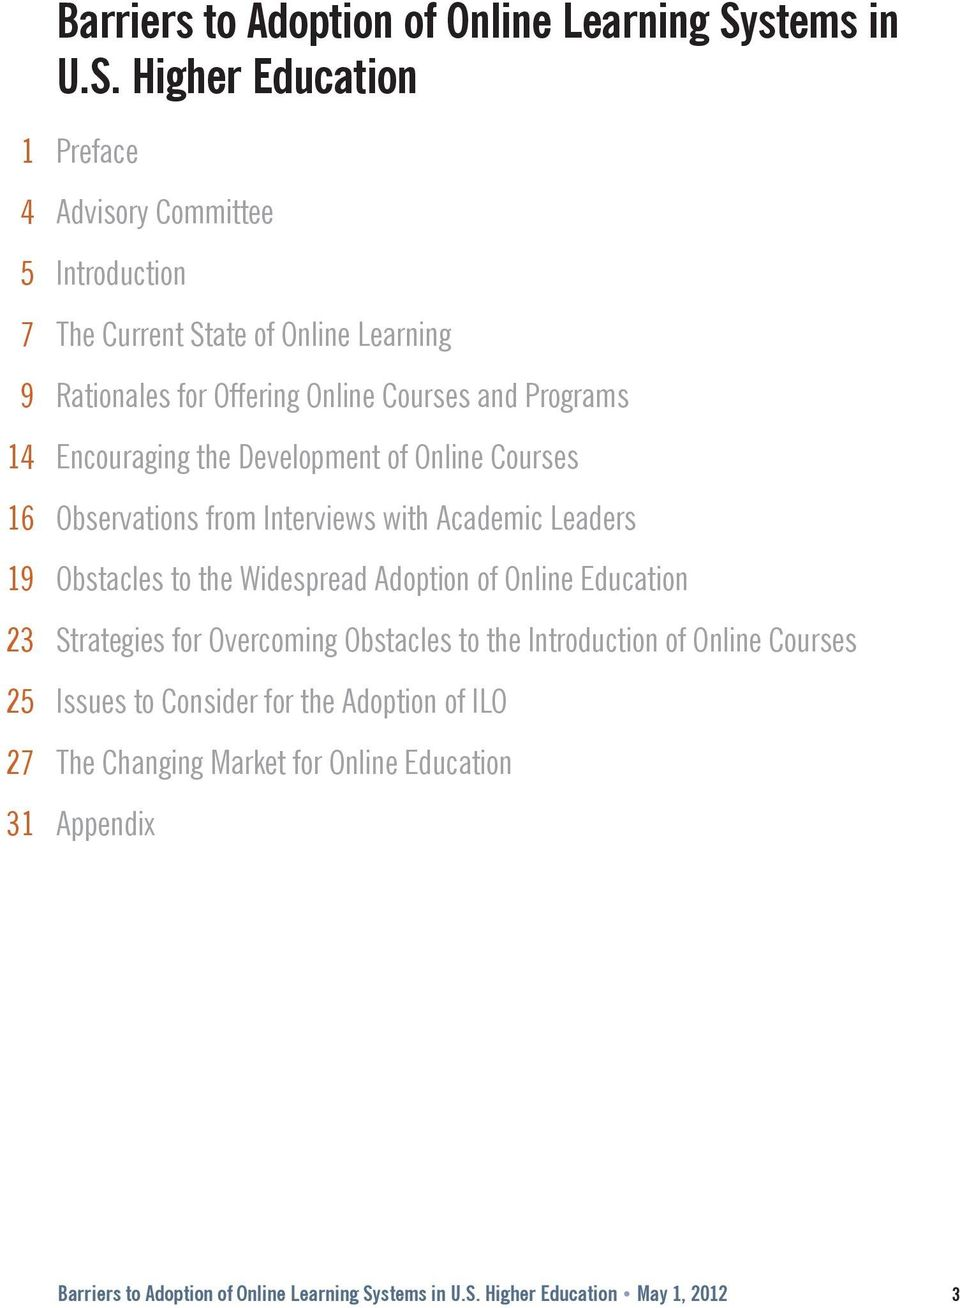 Higher Education 1 Preface 4 Advisory Committee 5 Introduction 7 The Current State of Online Learning 9 Rationales for Offering Online Courses and Programs 14